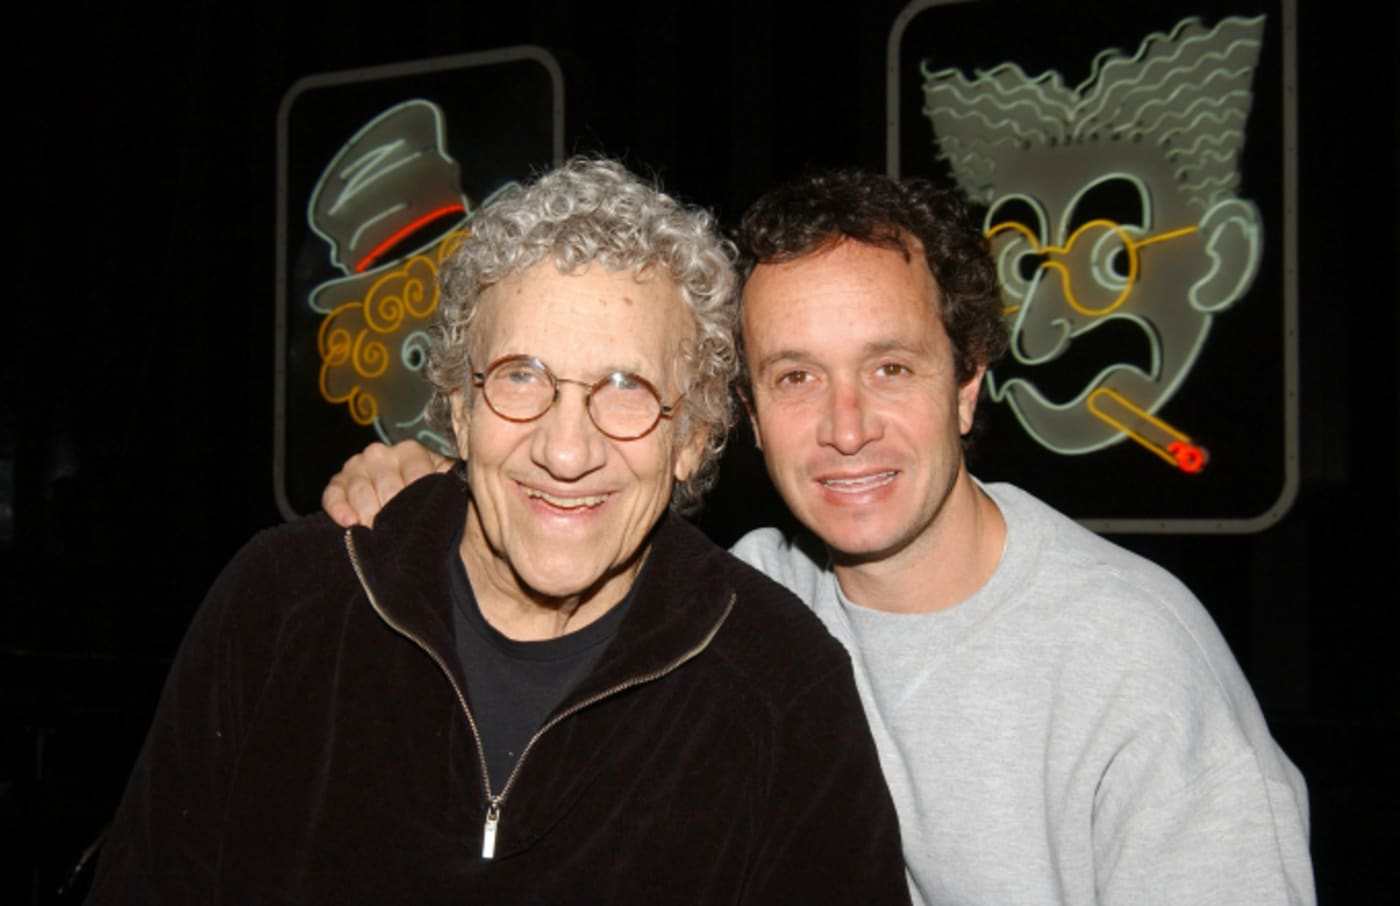 Sammy Shore and his son, comedian Pauly Shore